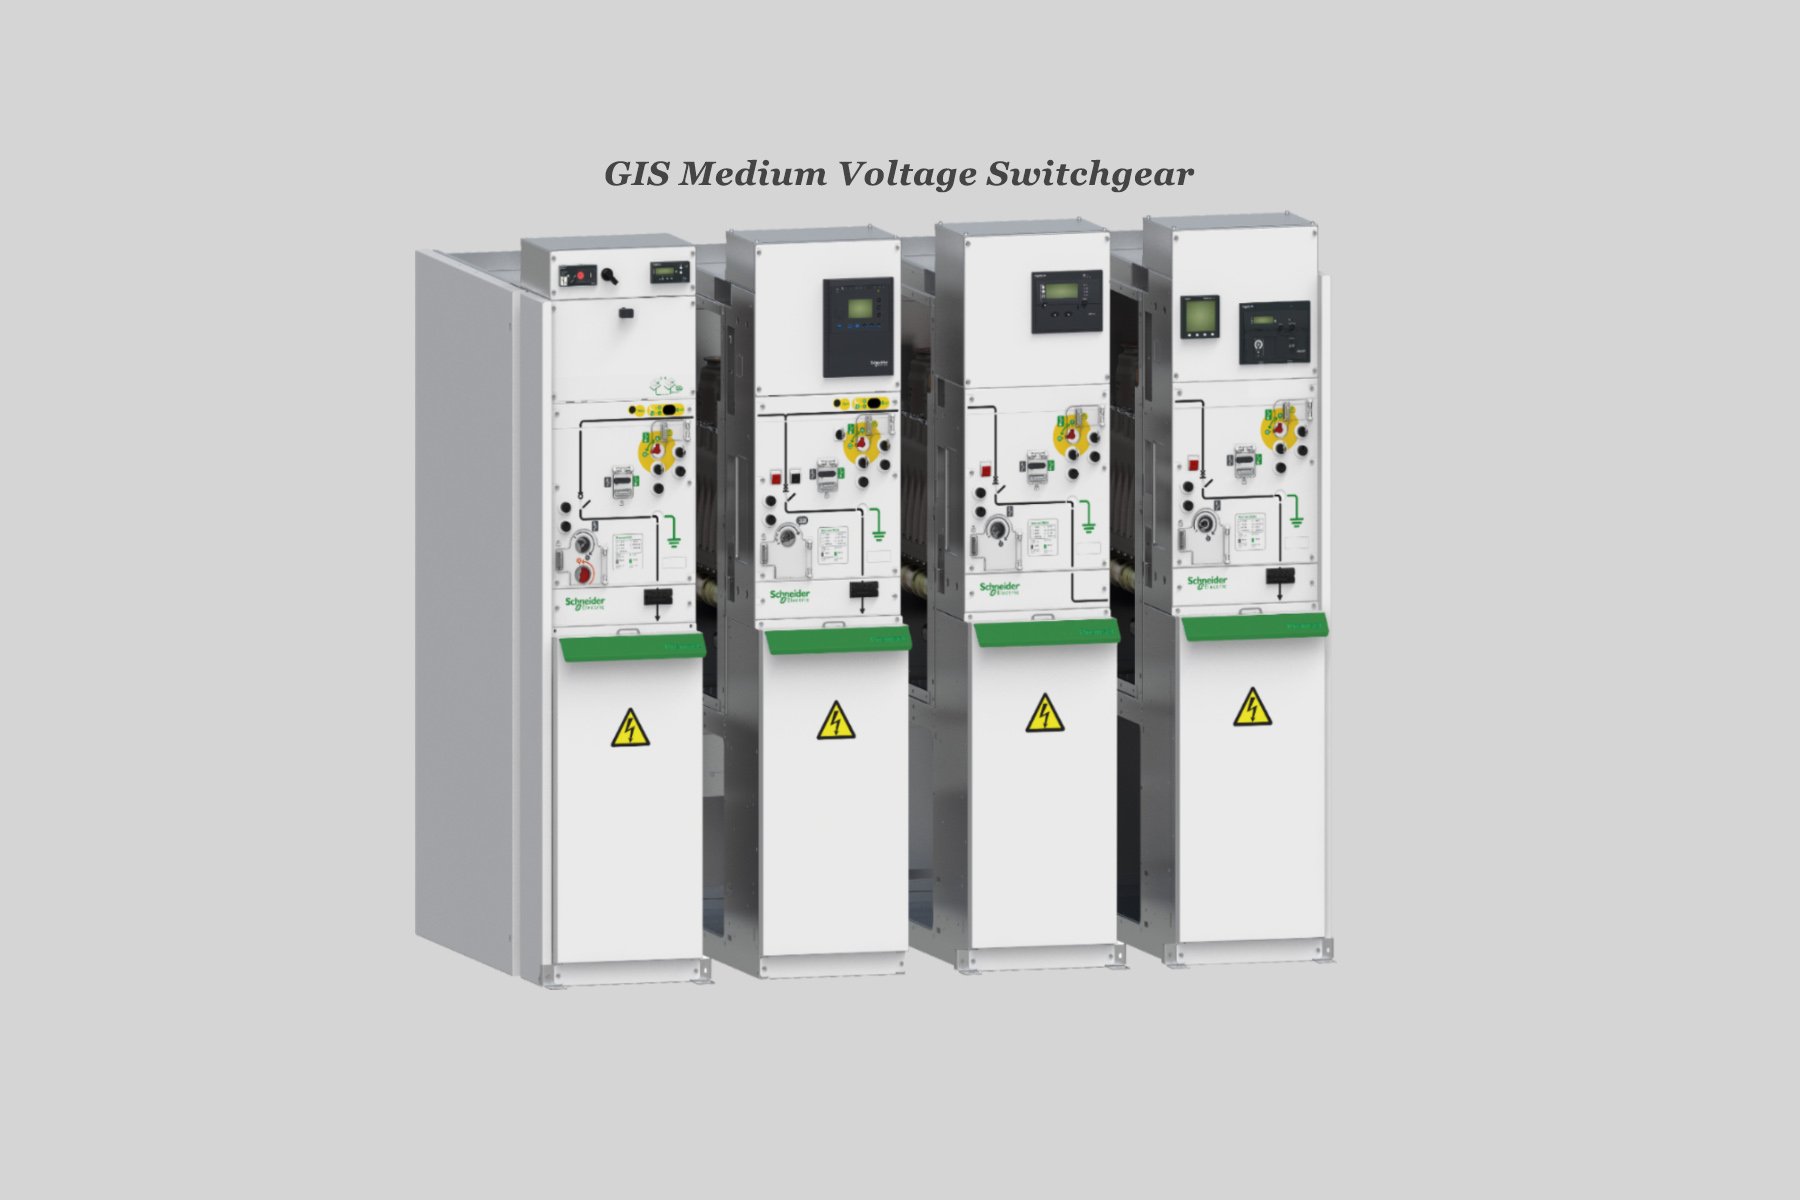 GIS Medium Voltage Switchgear